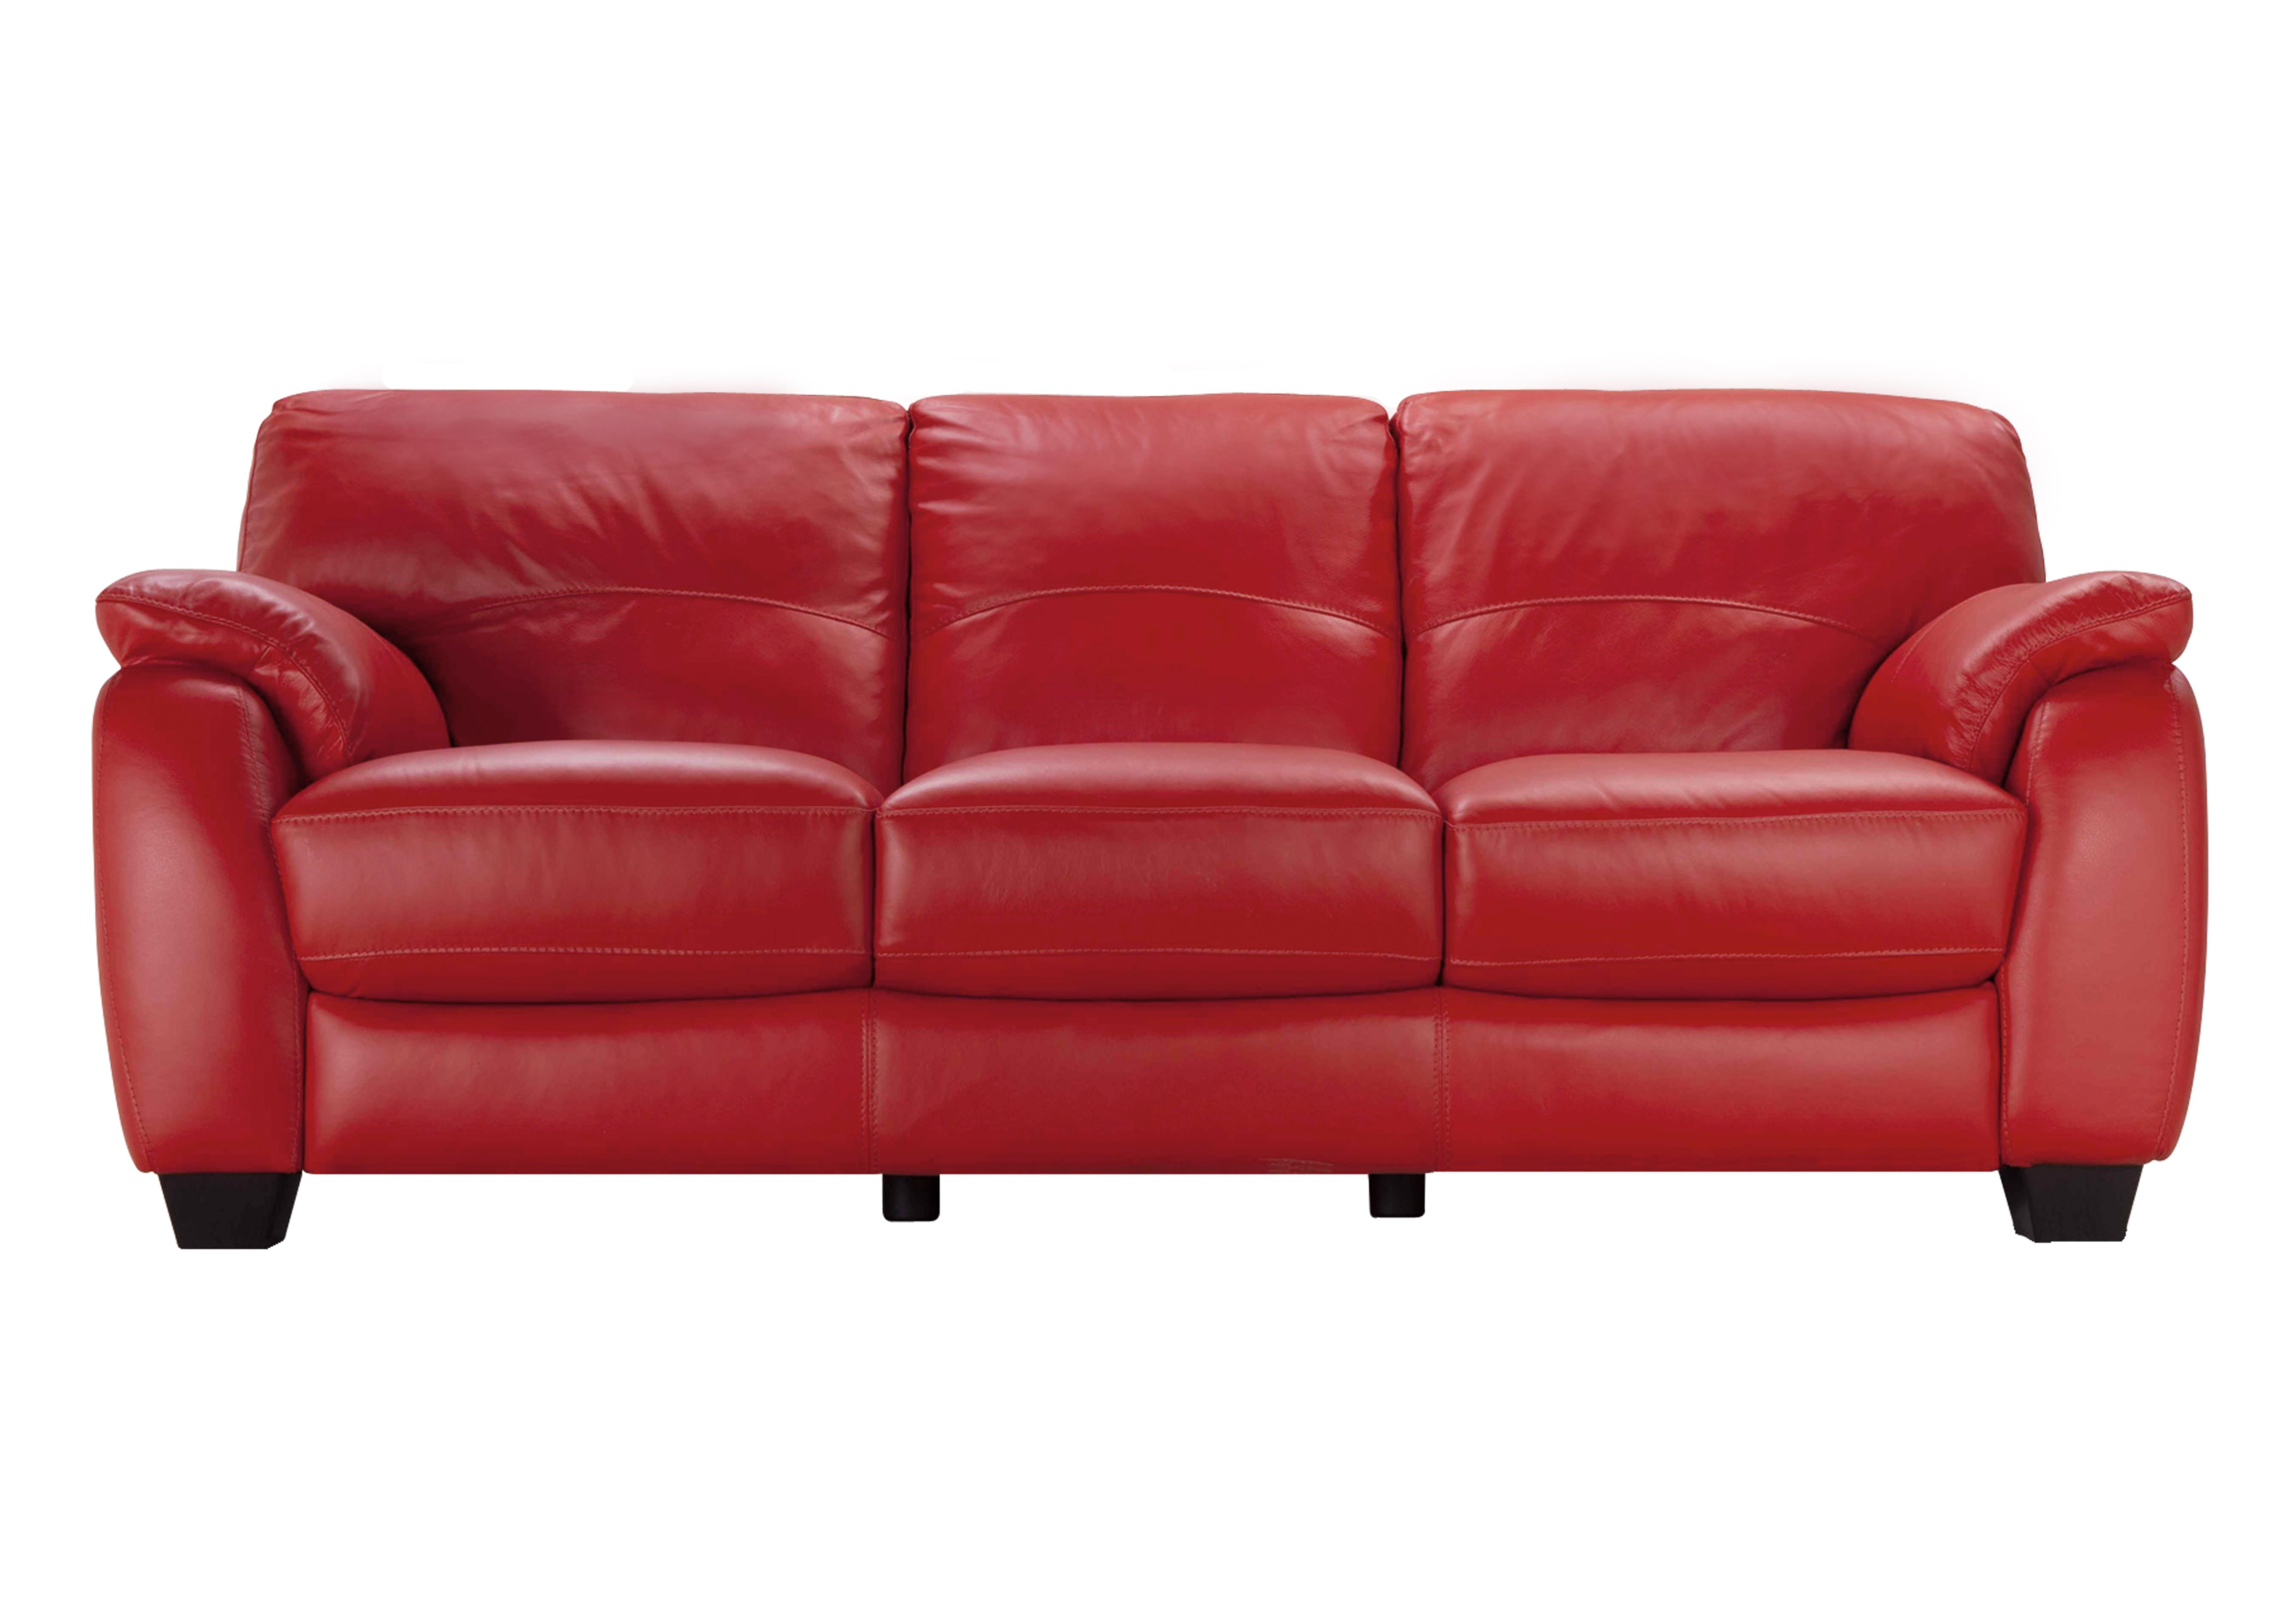 moods 3 seater leather sofa bed jcpenney sleepers world of furniture village